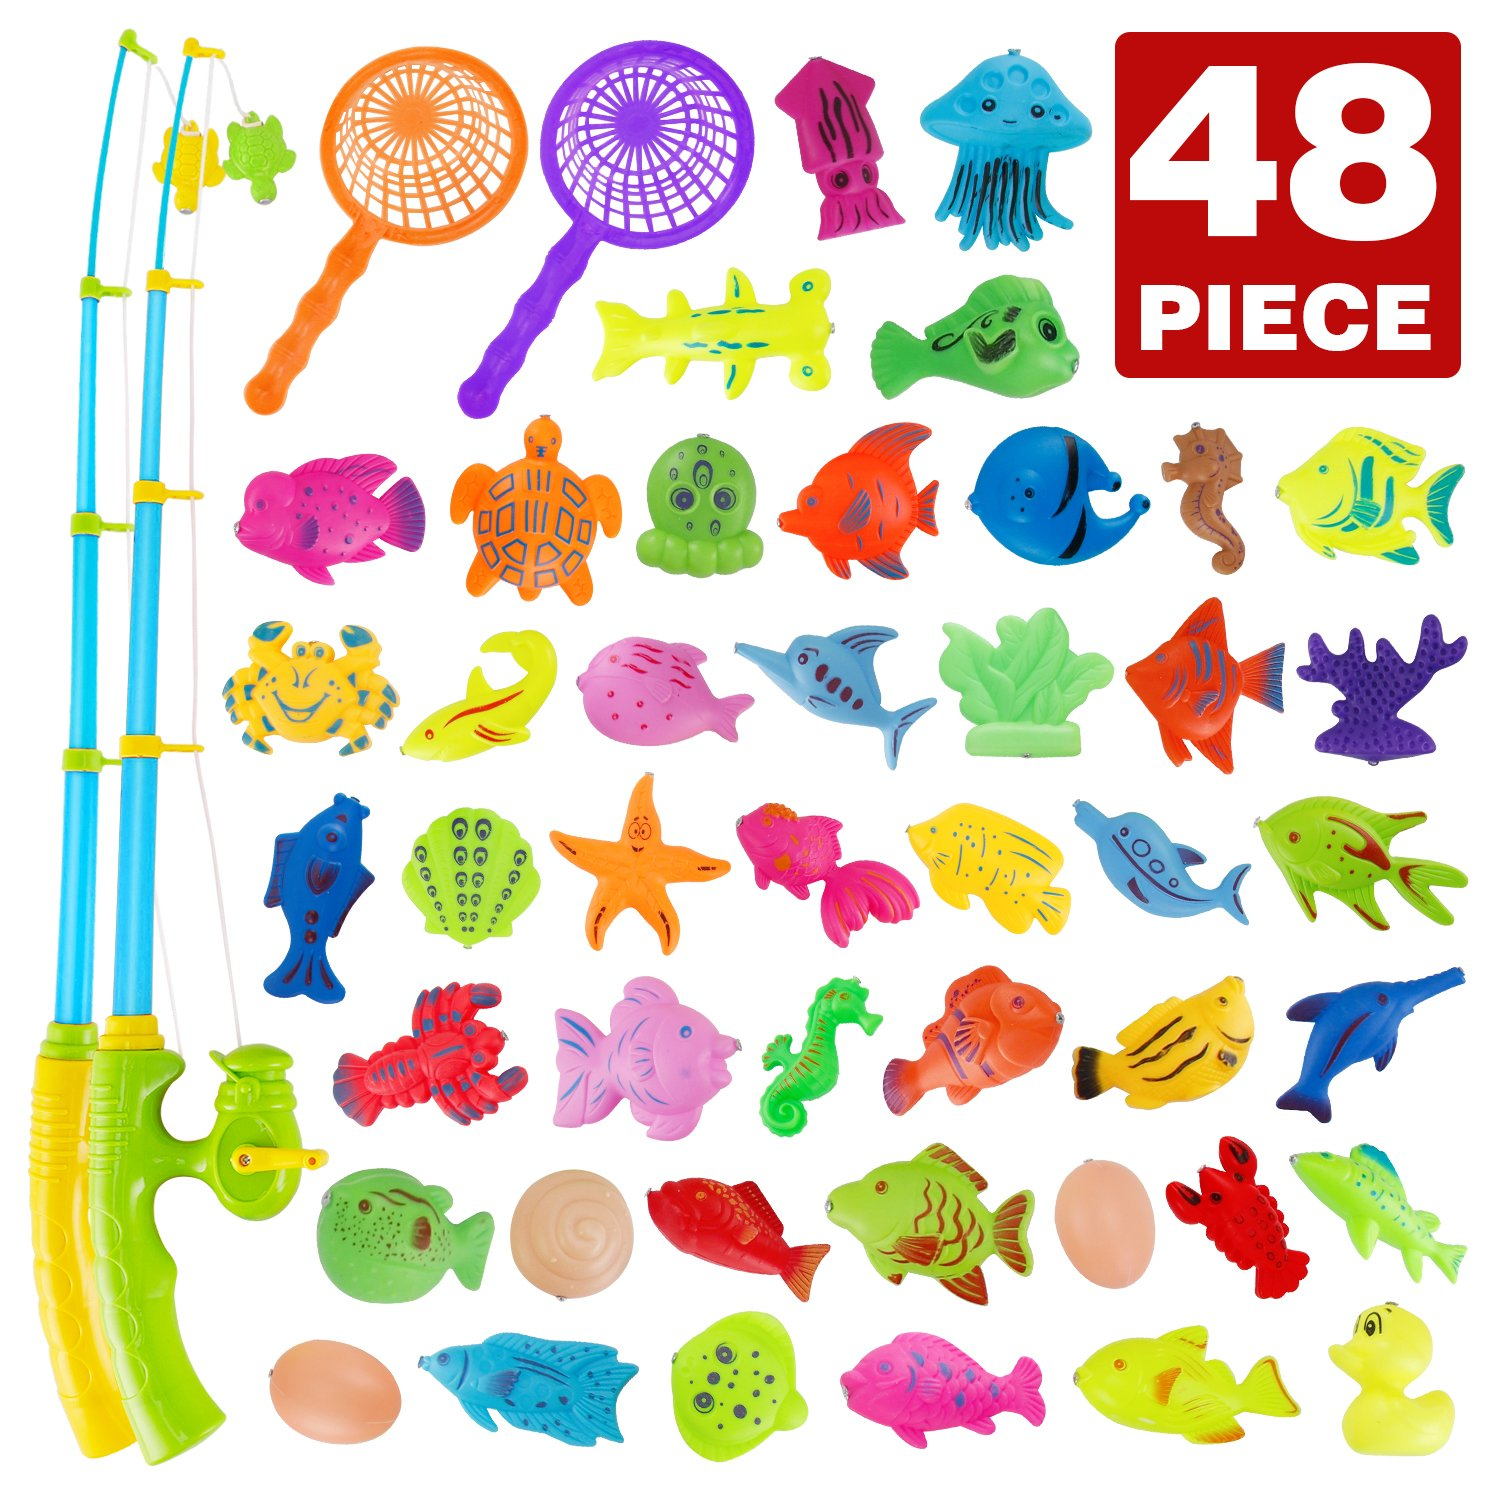 Fishing Bath Toy, 48 Piece Magnetic Fishing Floating Toy, Water Scoop Fish Net Game in Bathtub Bathroom Pool Bath Time, Learning Education Toys For Boys Girls Toddlers Party Favors Nasidear